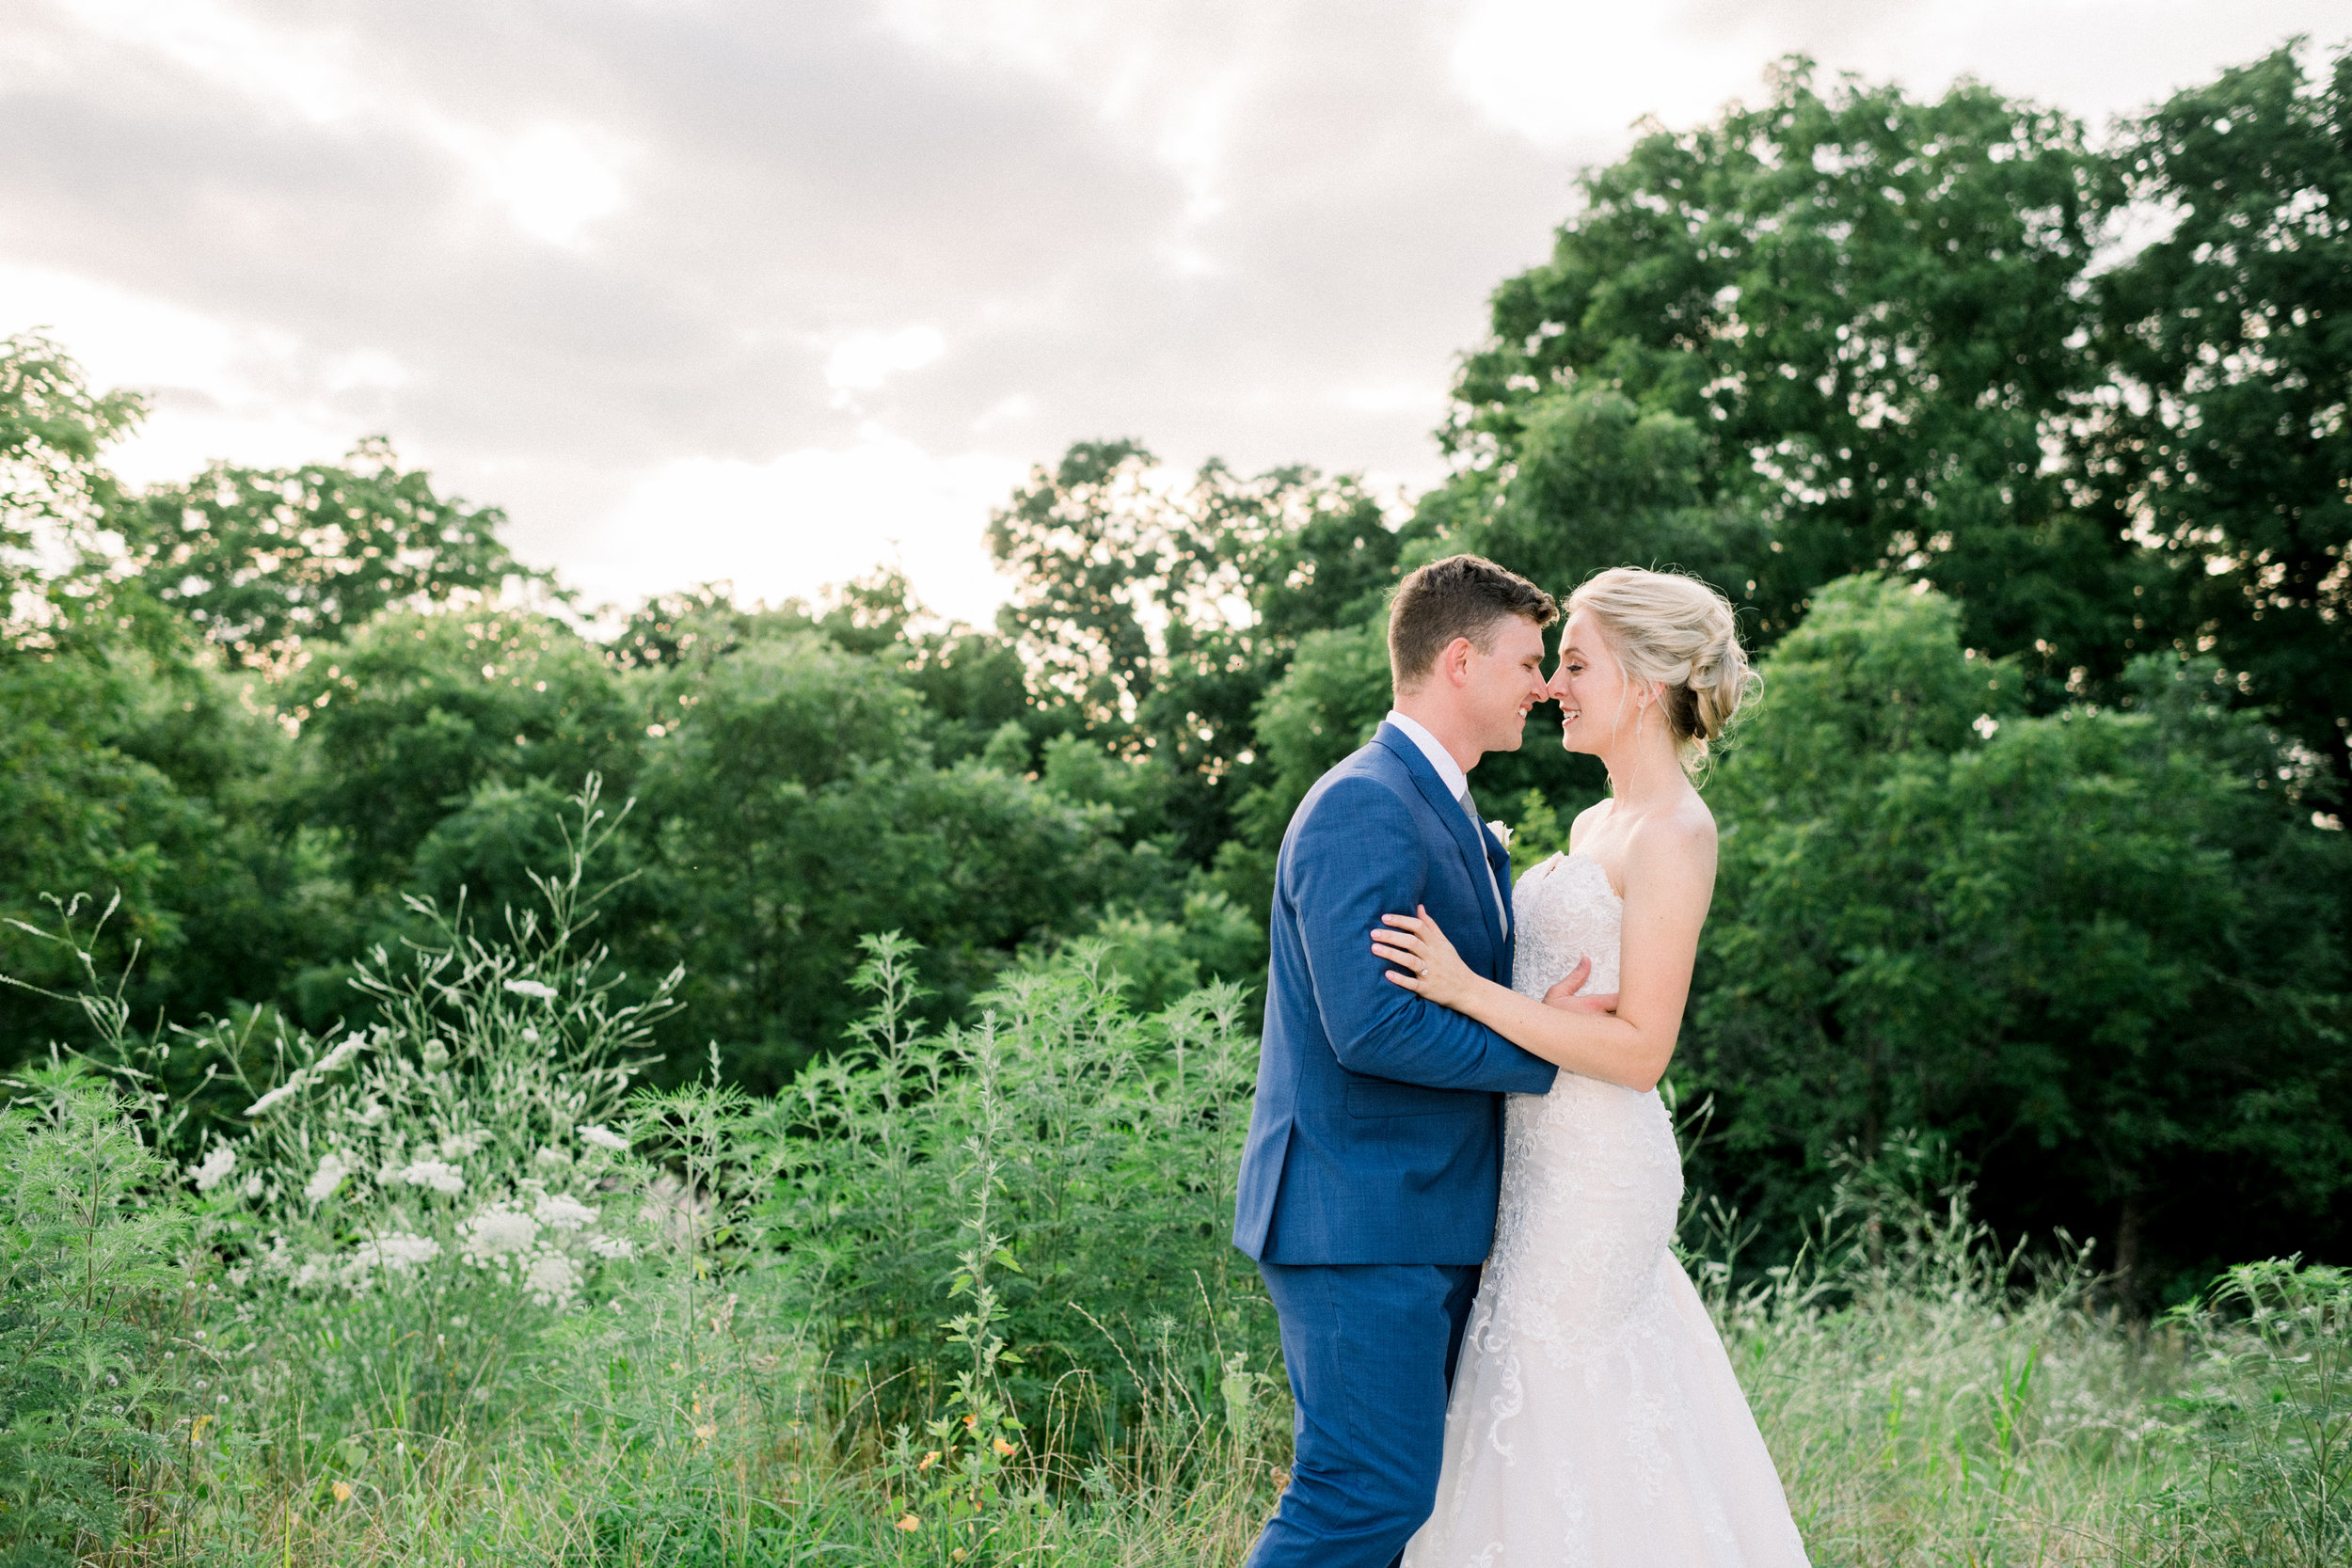 The-Fields-Reserve-Stoughton-WI-Bride-and-Groom-Wedding-Photos-397.jpg